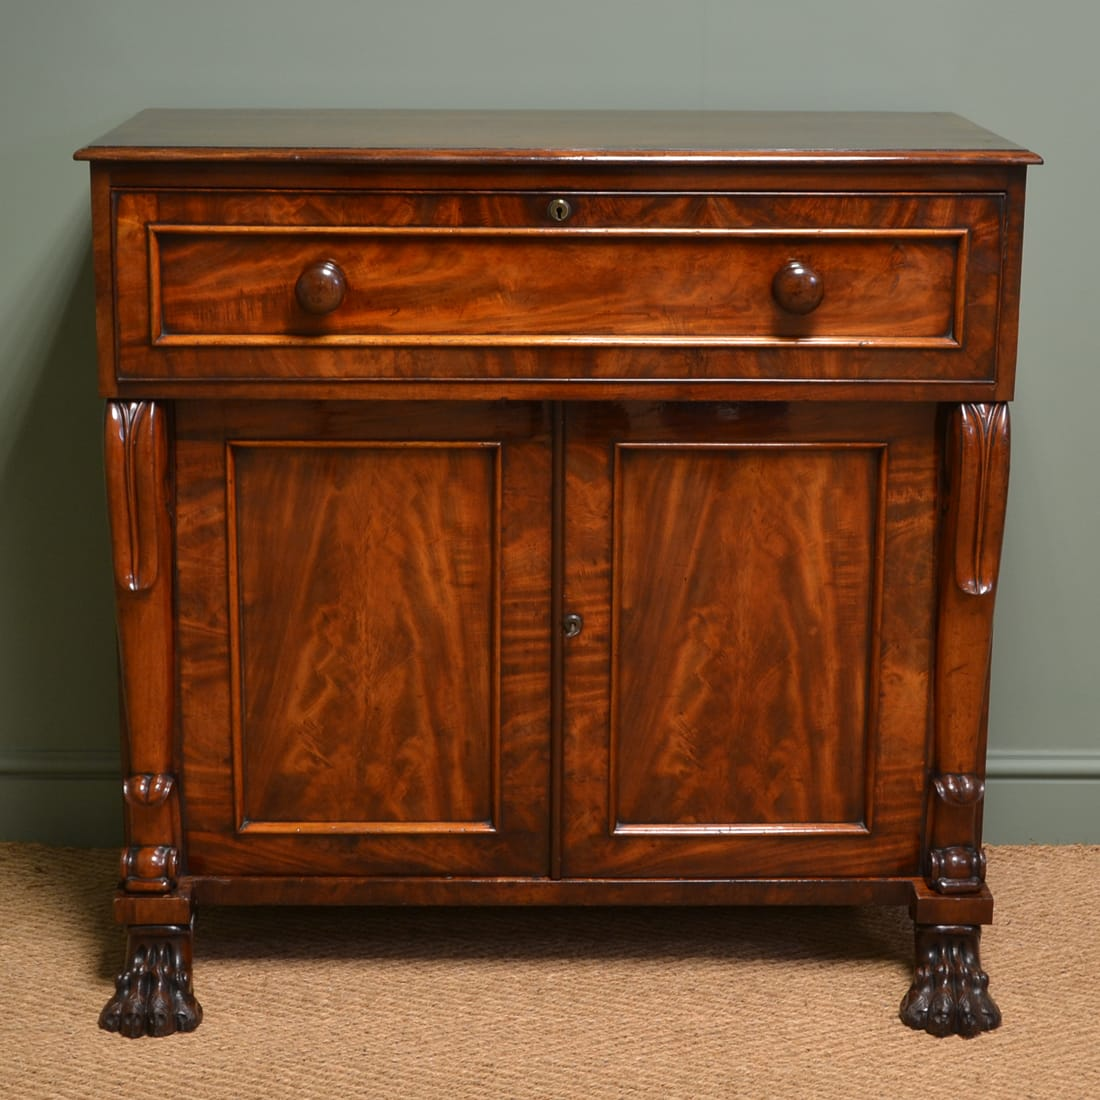 William IV Antique Mahogany Secretaire Desk with Claw Feet